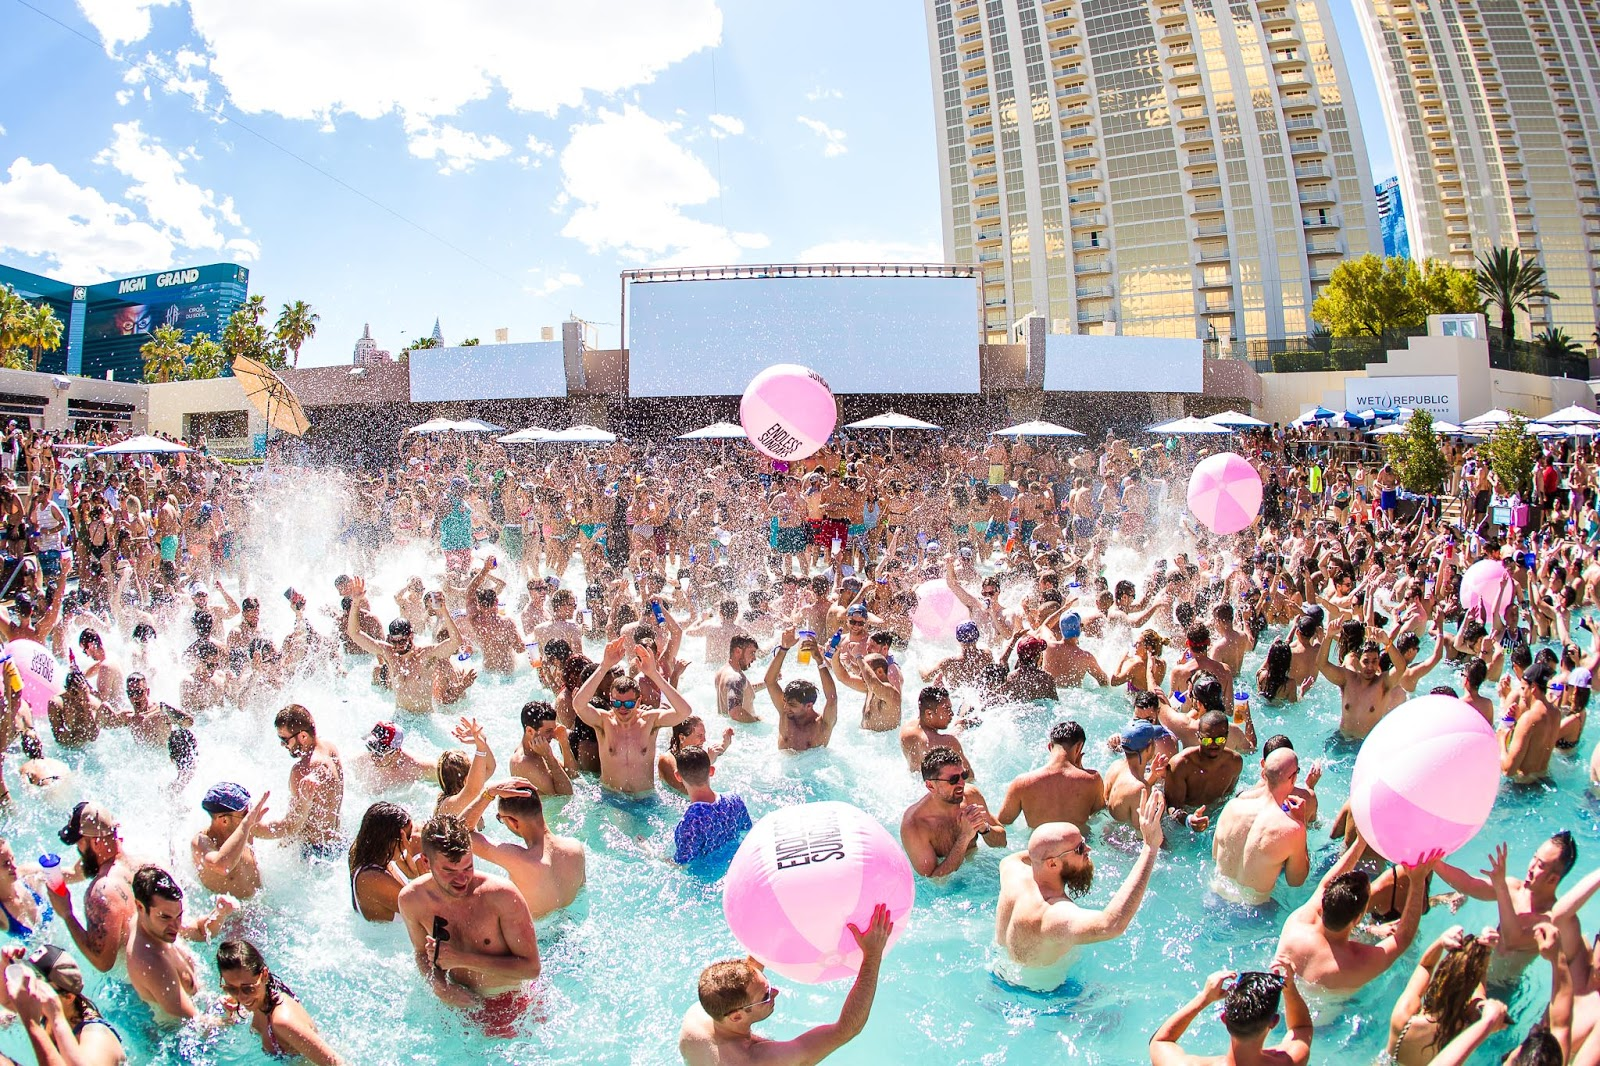 An epic pool party at one of Exodus Festival's dayclubs